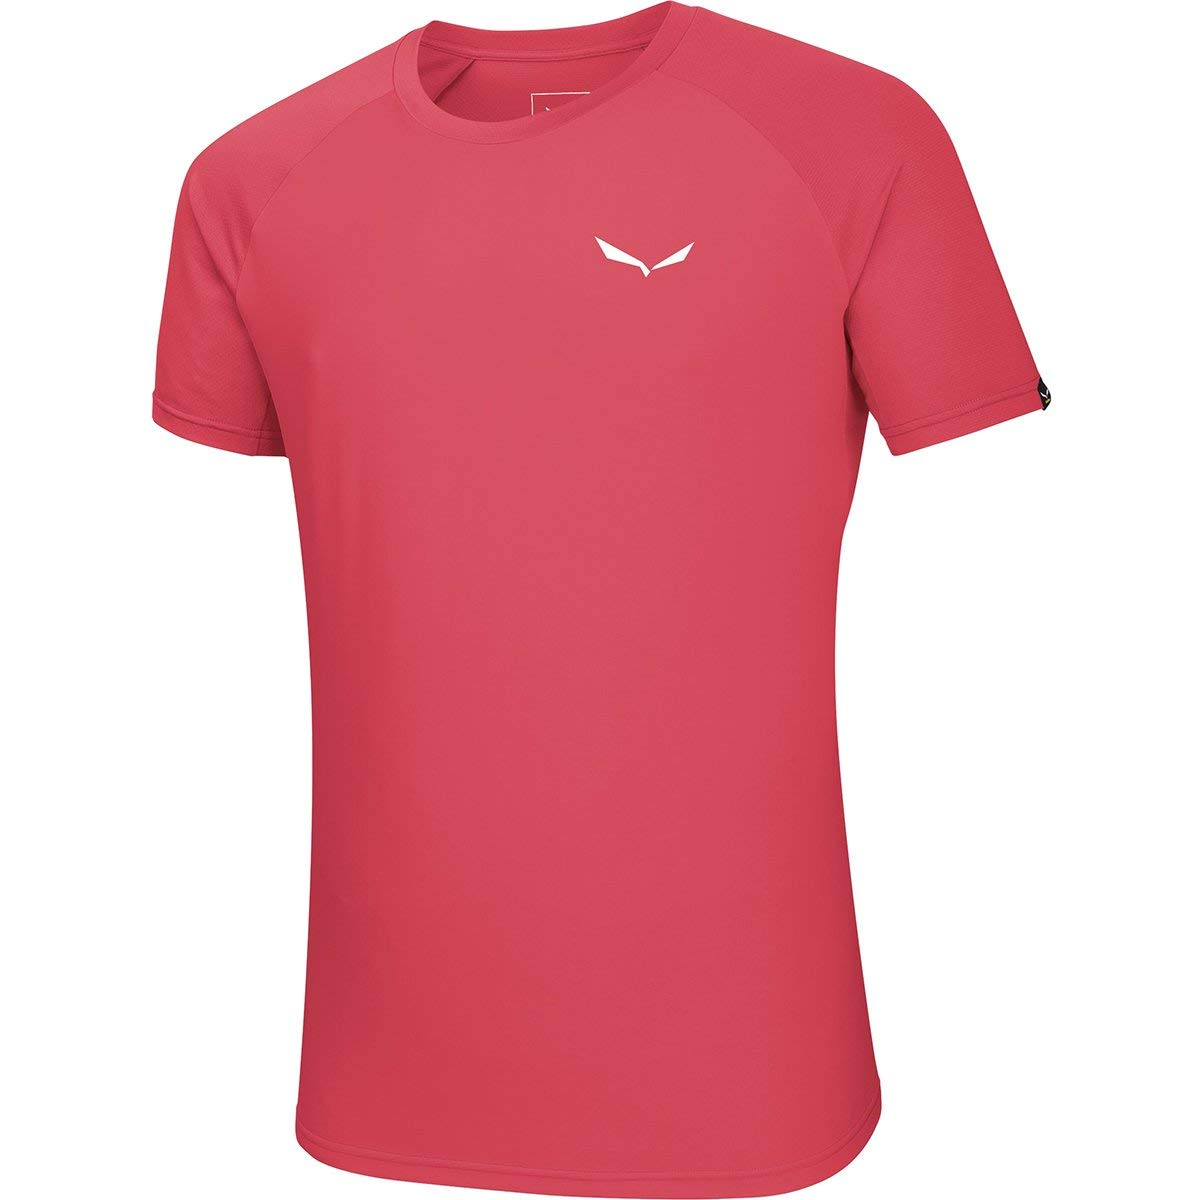 Mineral rouge 50 L Salewa agner Climb Dry M S S Tee, T-Shirt pour